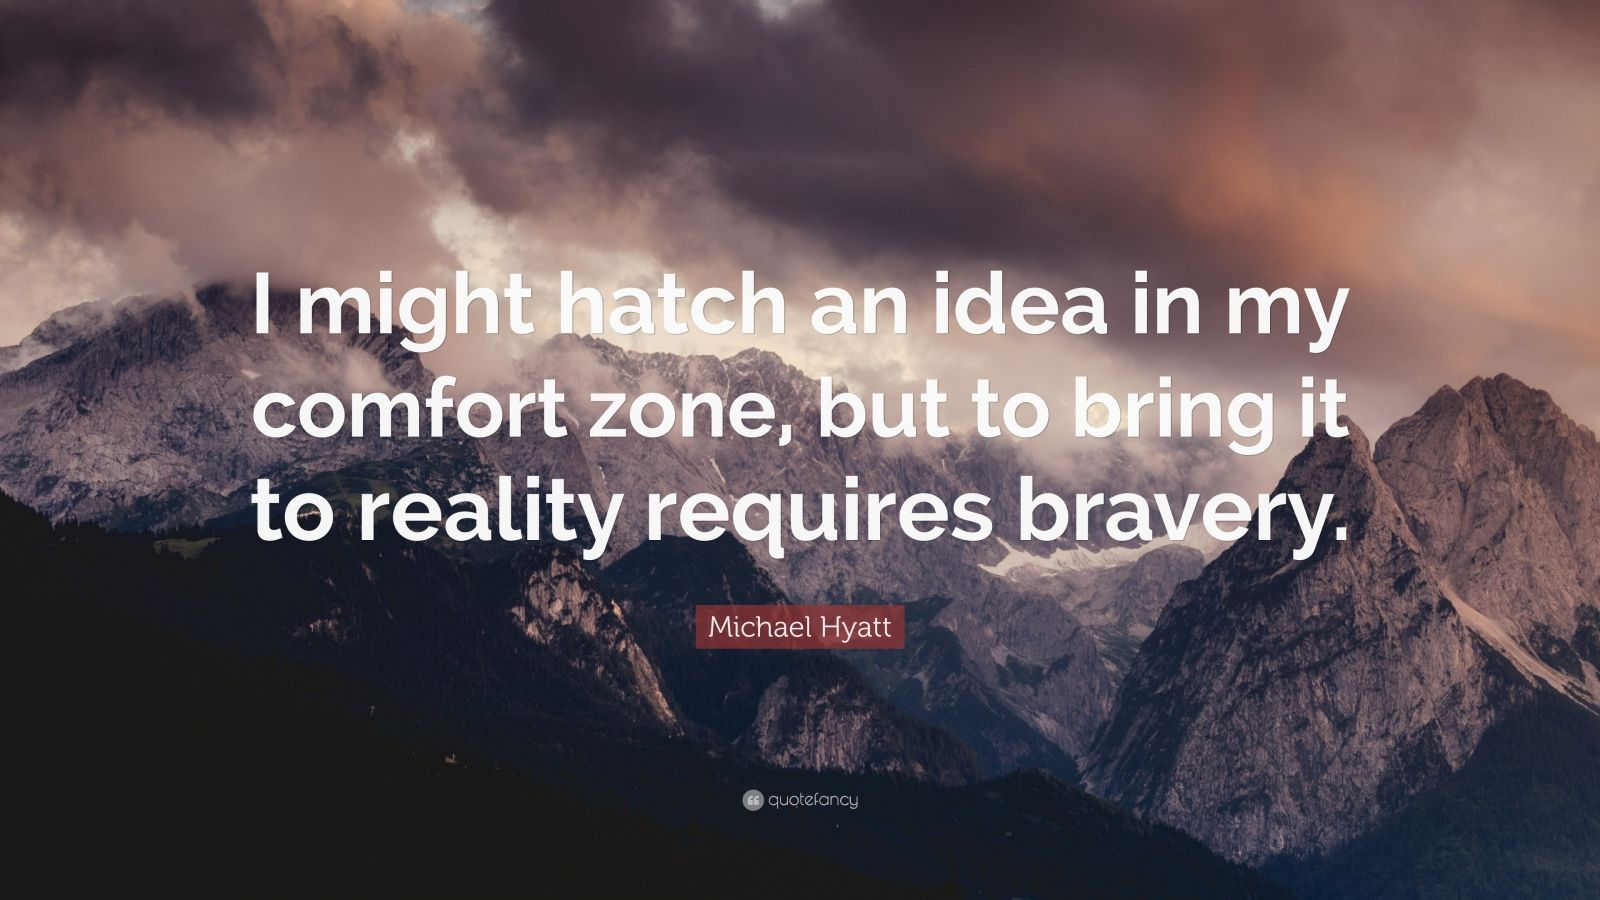 Comfort Zone Bravery Quote Wallpaper Michael Hyatt Quote I Might Hatch An Idea In My Comfort